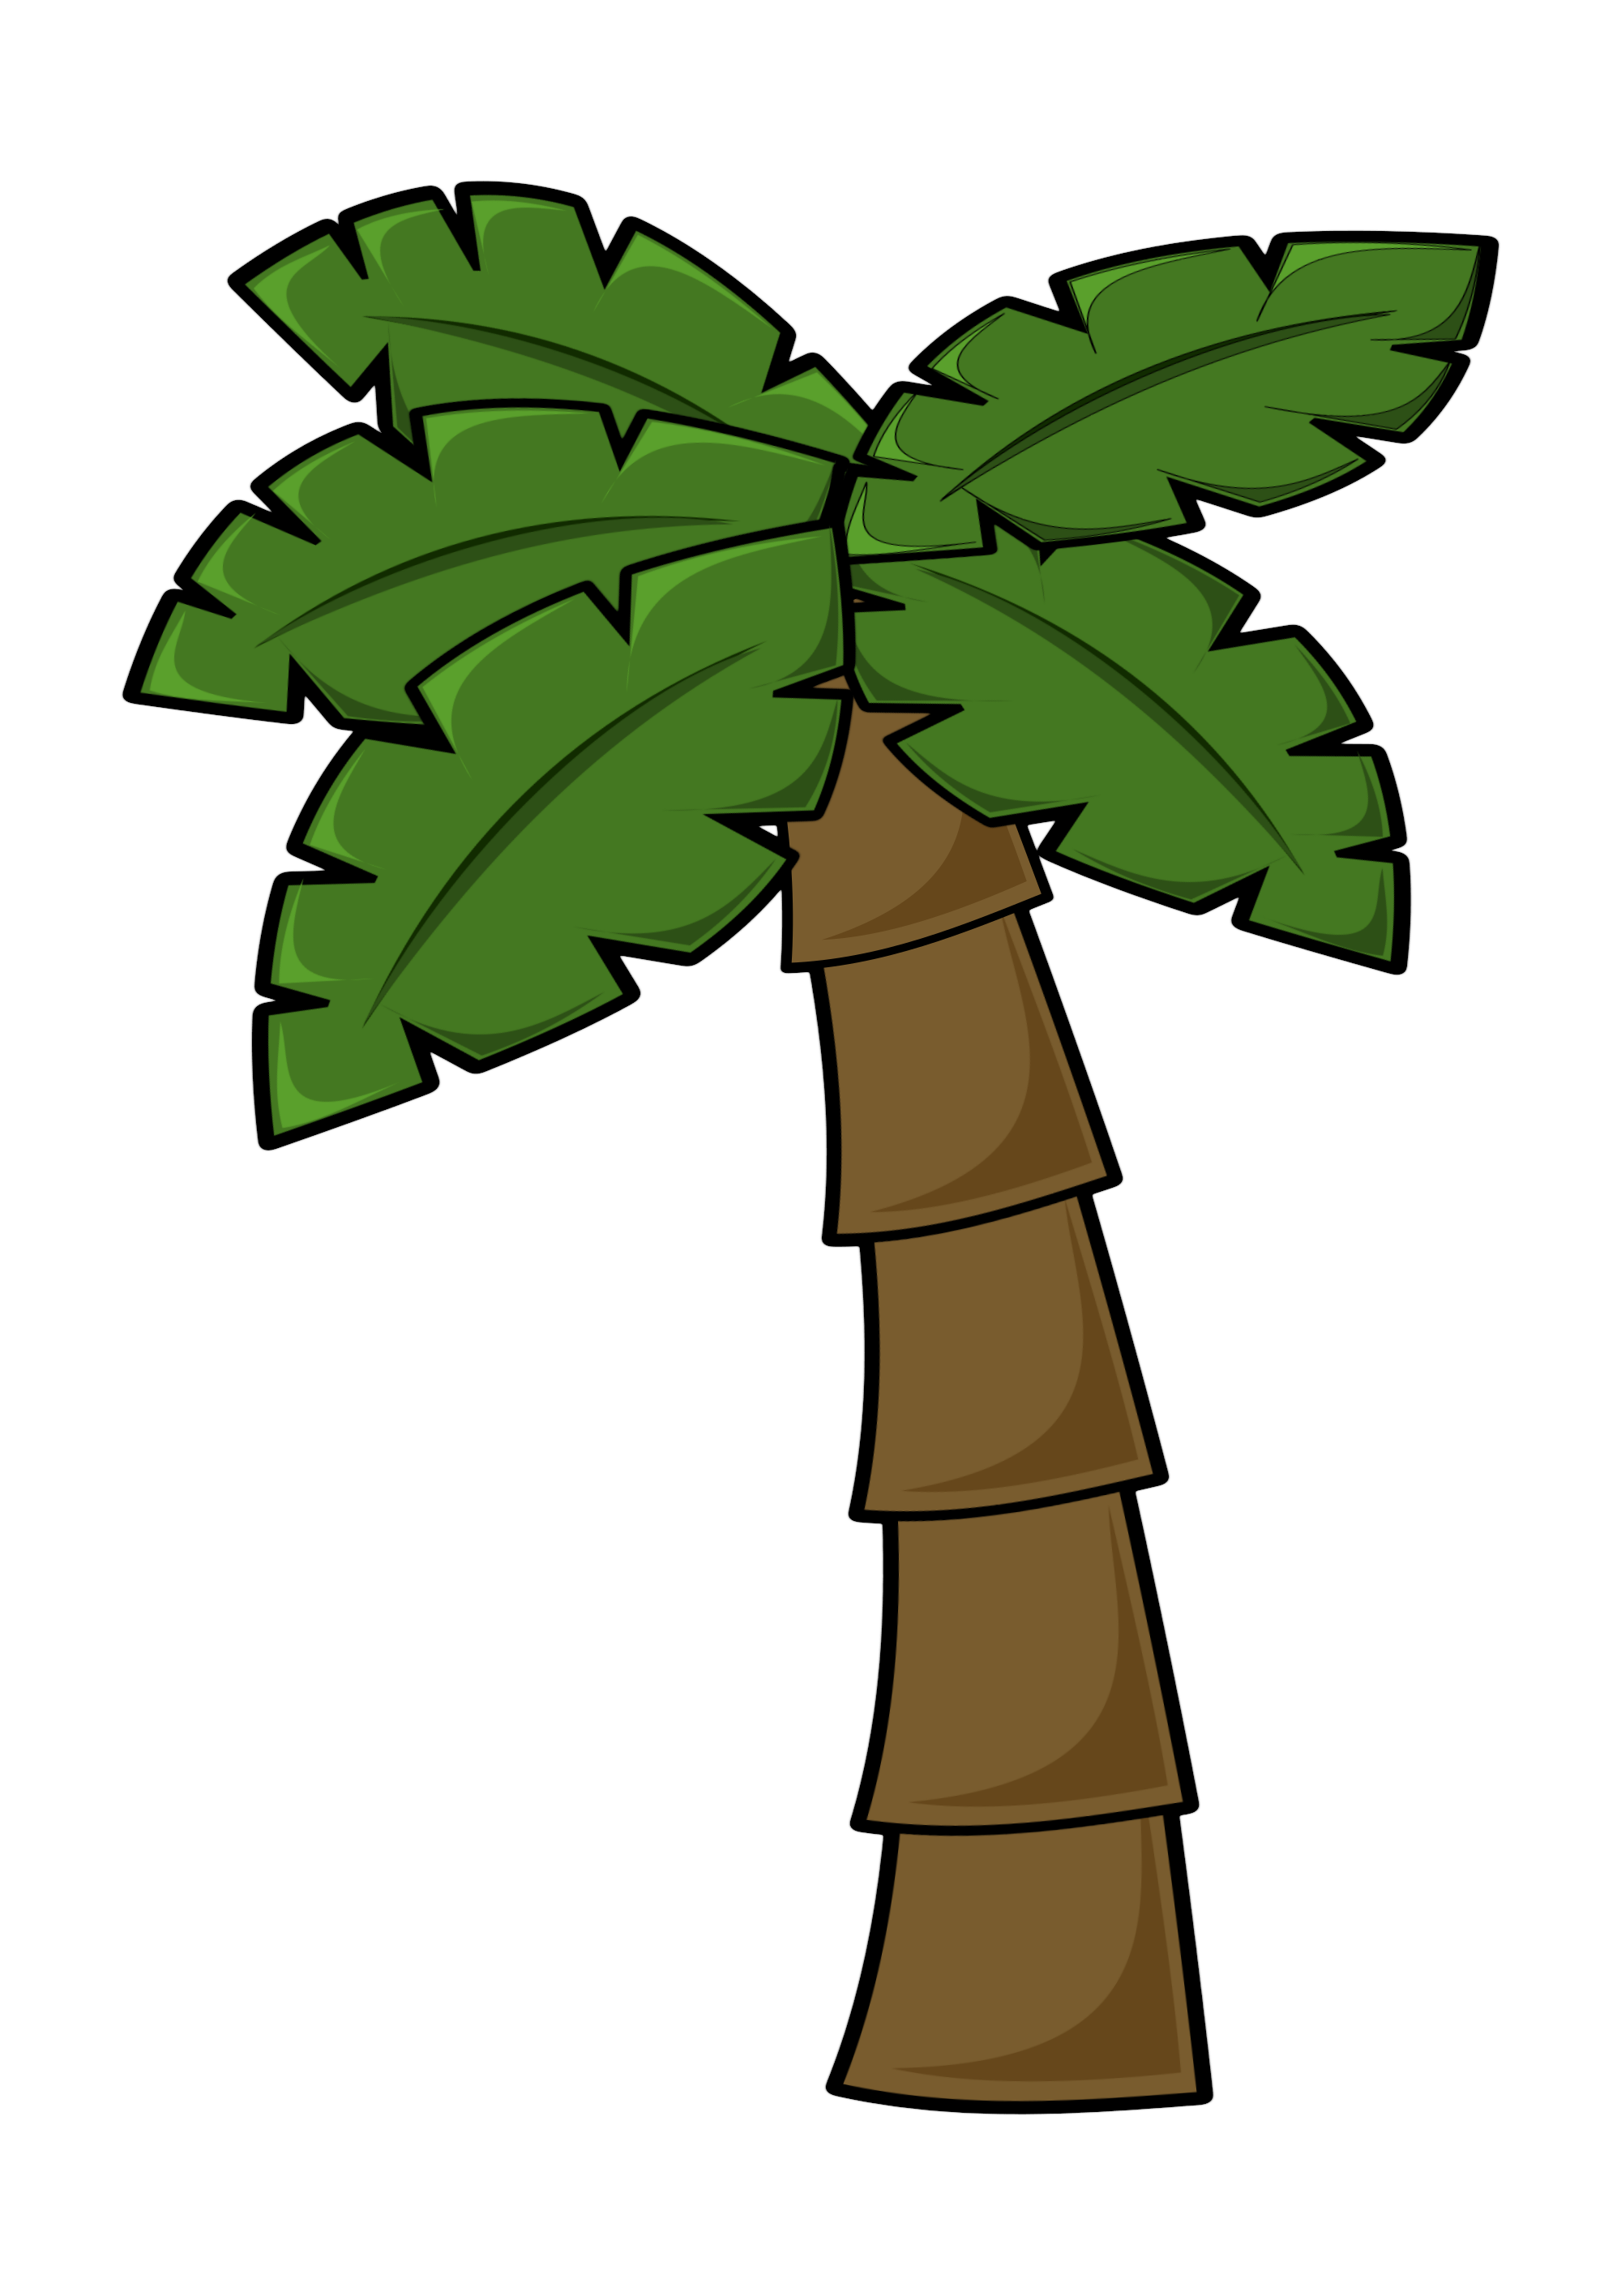 Jungle tree clipart clip transparent library Free Simple Cartoon Palm Tree Clipart Clipart PNG and Vector Image ... clip transparent library